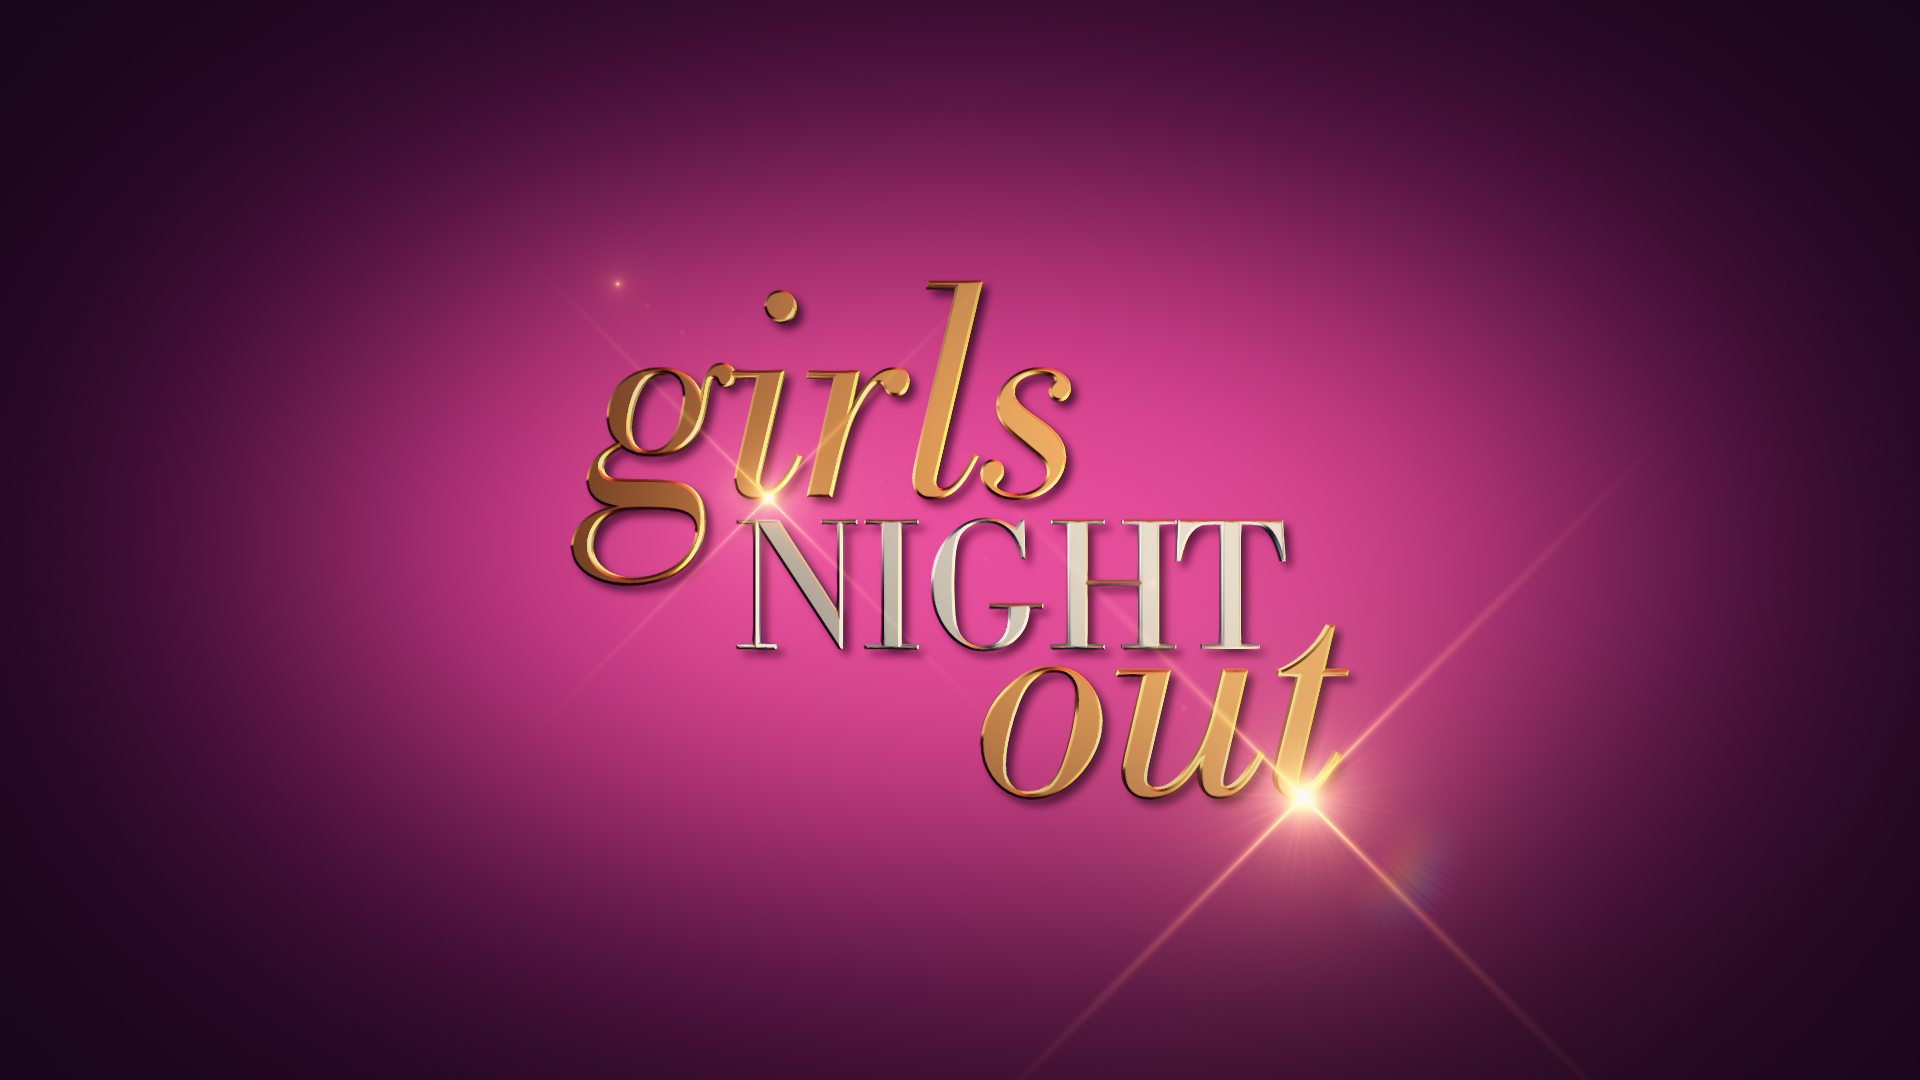 GirlsNightOut_MaintTitle_02_1.jpg